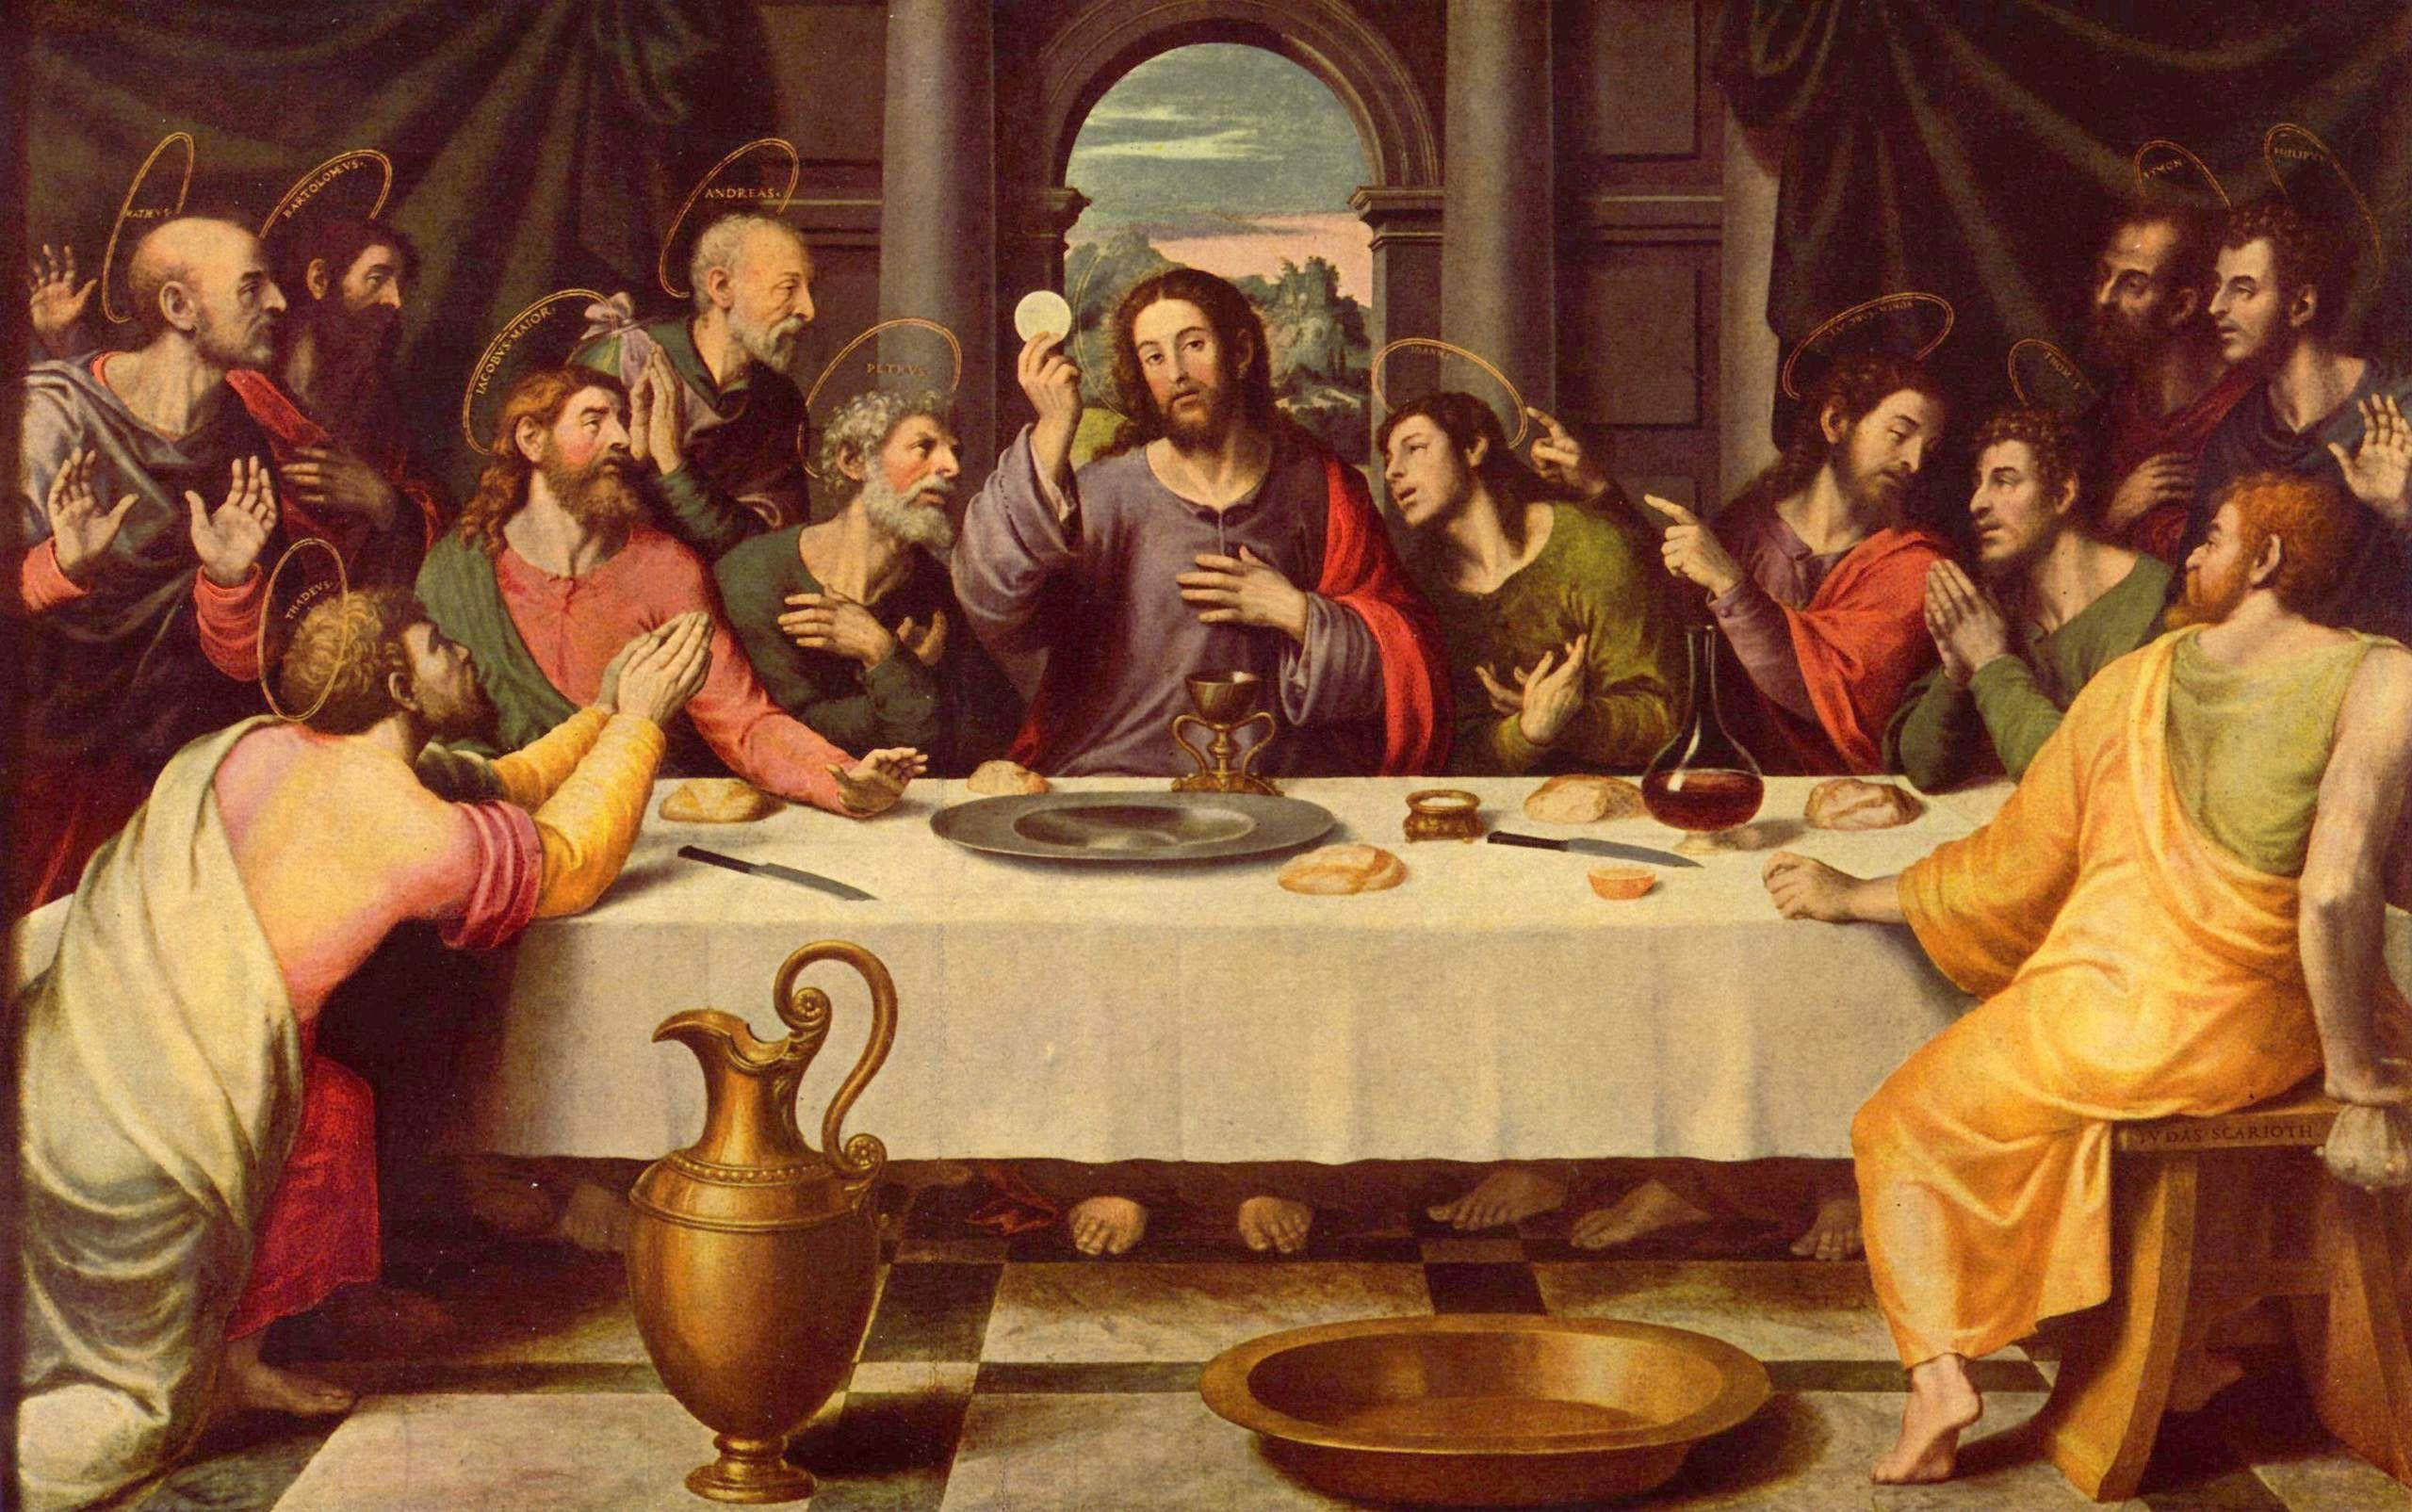 Image Maundy Thursday - Last Supper - Img 21735